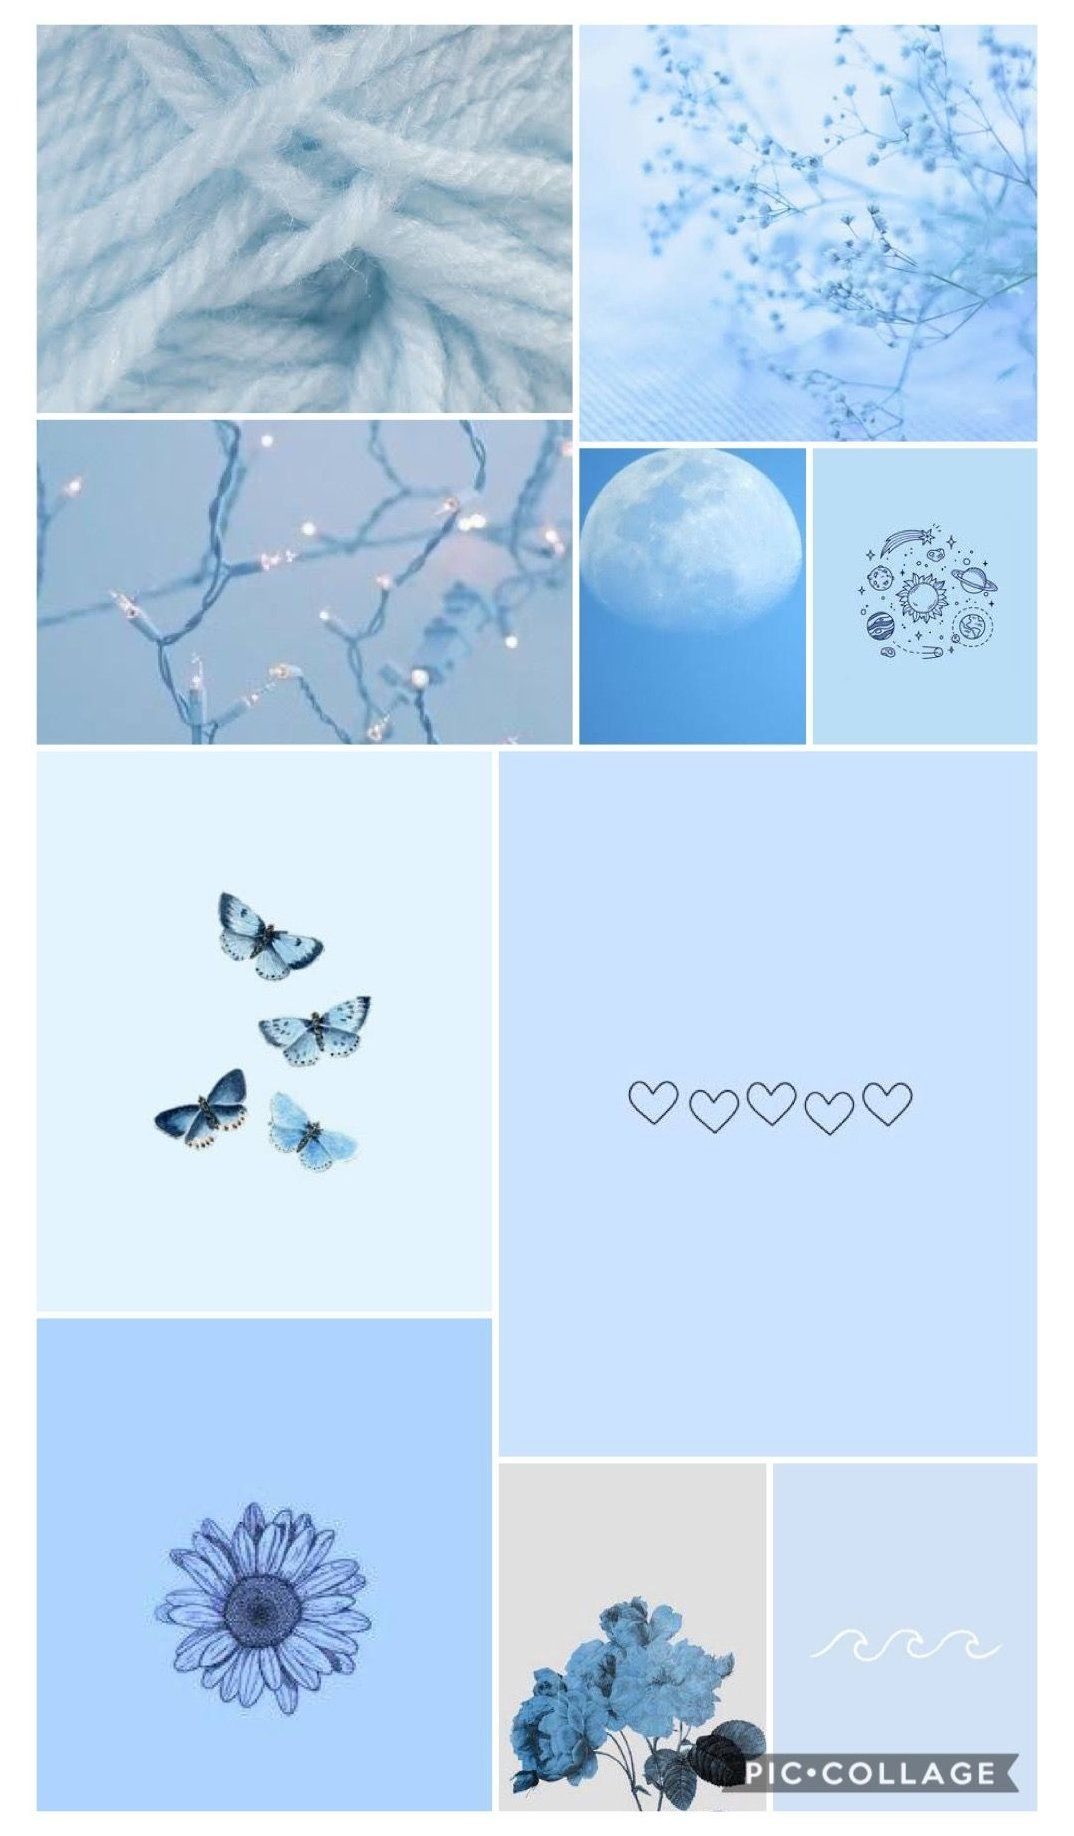 Baby Blue Aesthetic Wallpaper Baby Blue Aesthetic Wallpaper Babyblueaestheticwallpaper In 2021 Baby Blue Wallpaper Blue Background Wallpapers Blue Aesthetic